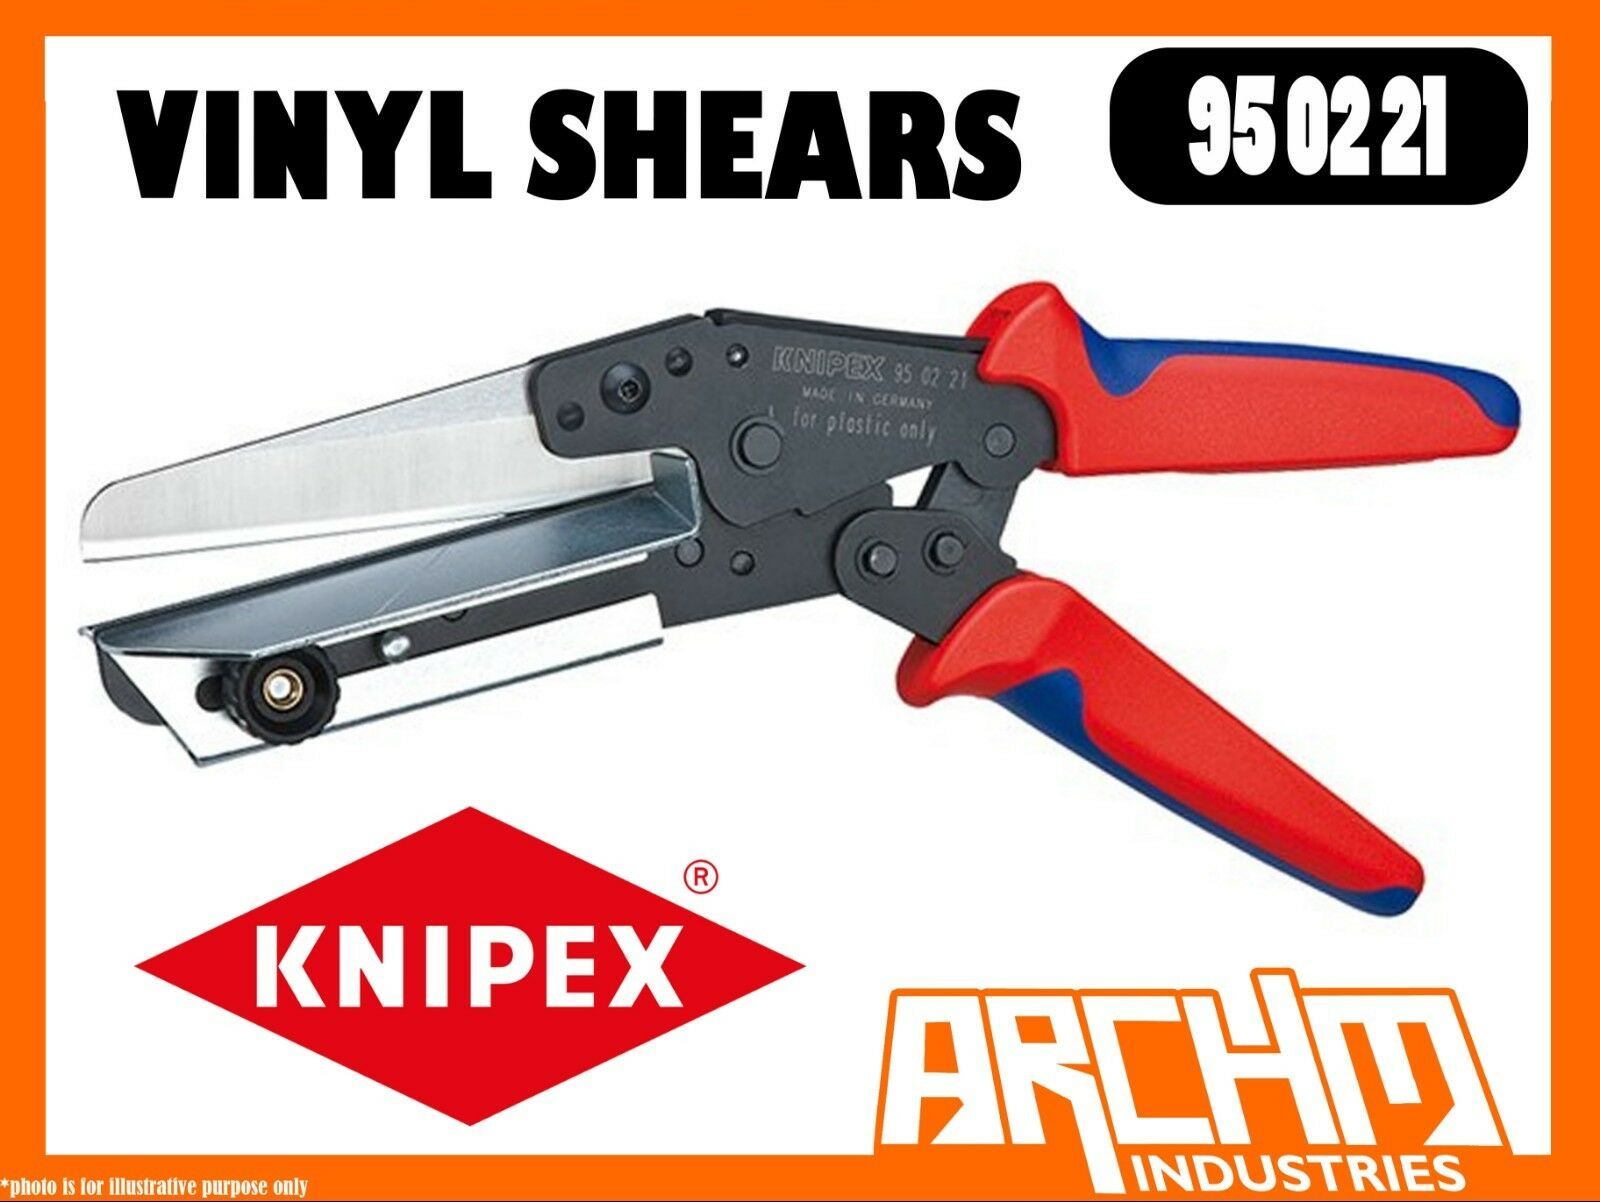 KNIPEX 950221 - VINYL SHEARS - 275MM CUTTING SHORTENING CABLE DUCTS CHROME STEEL